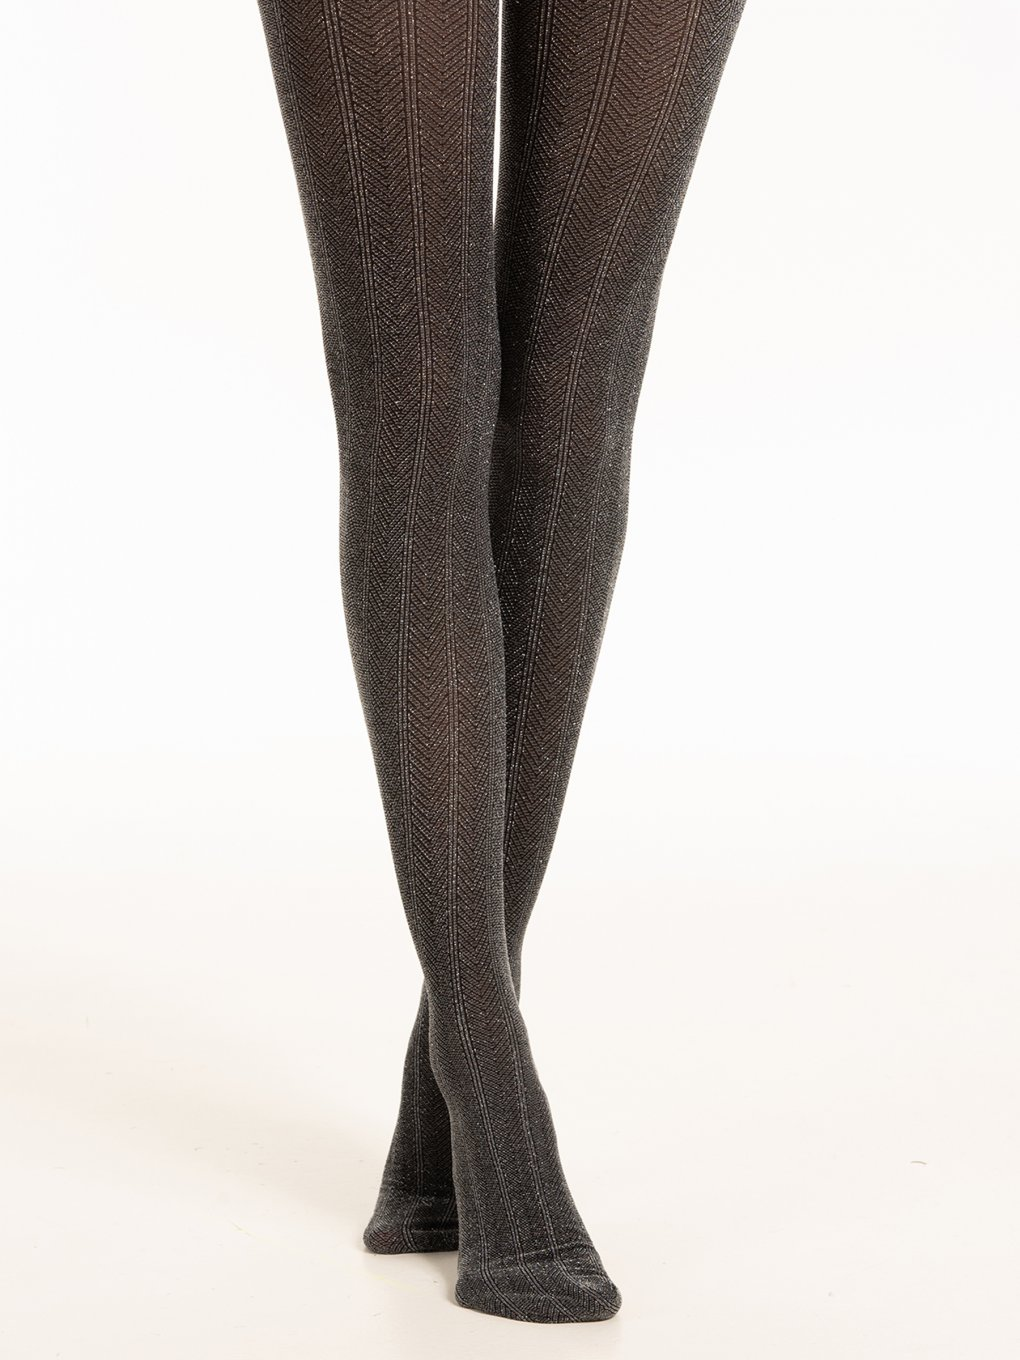 Tights with silver thread